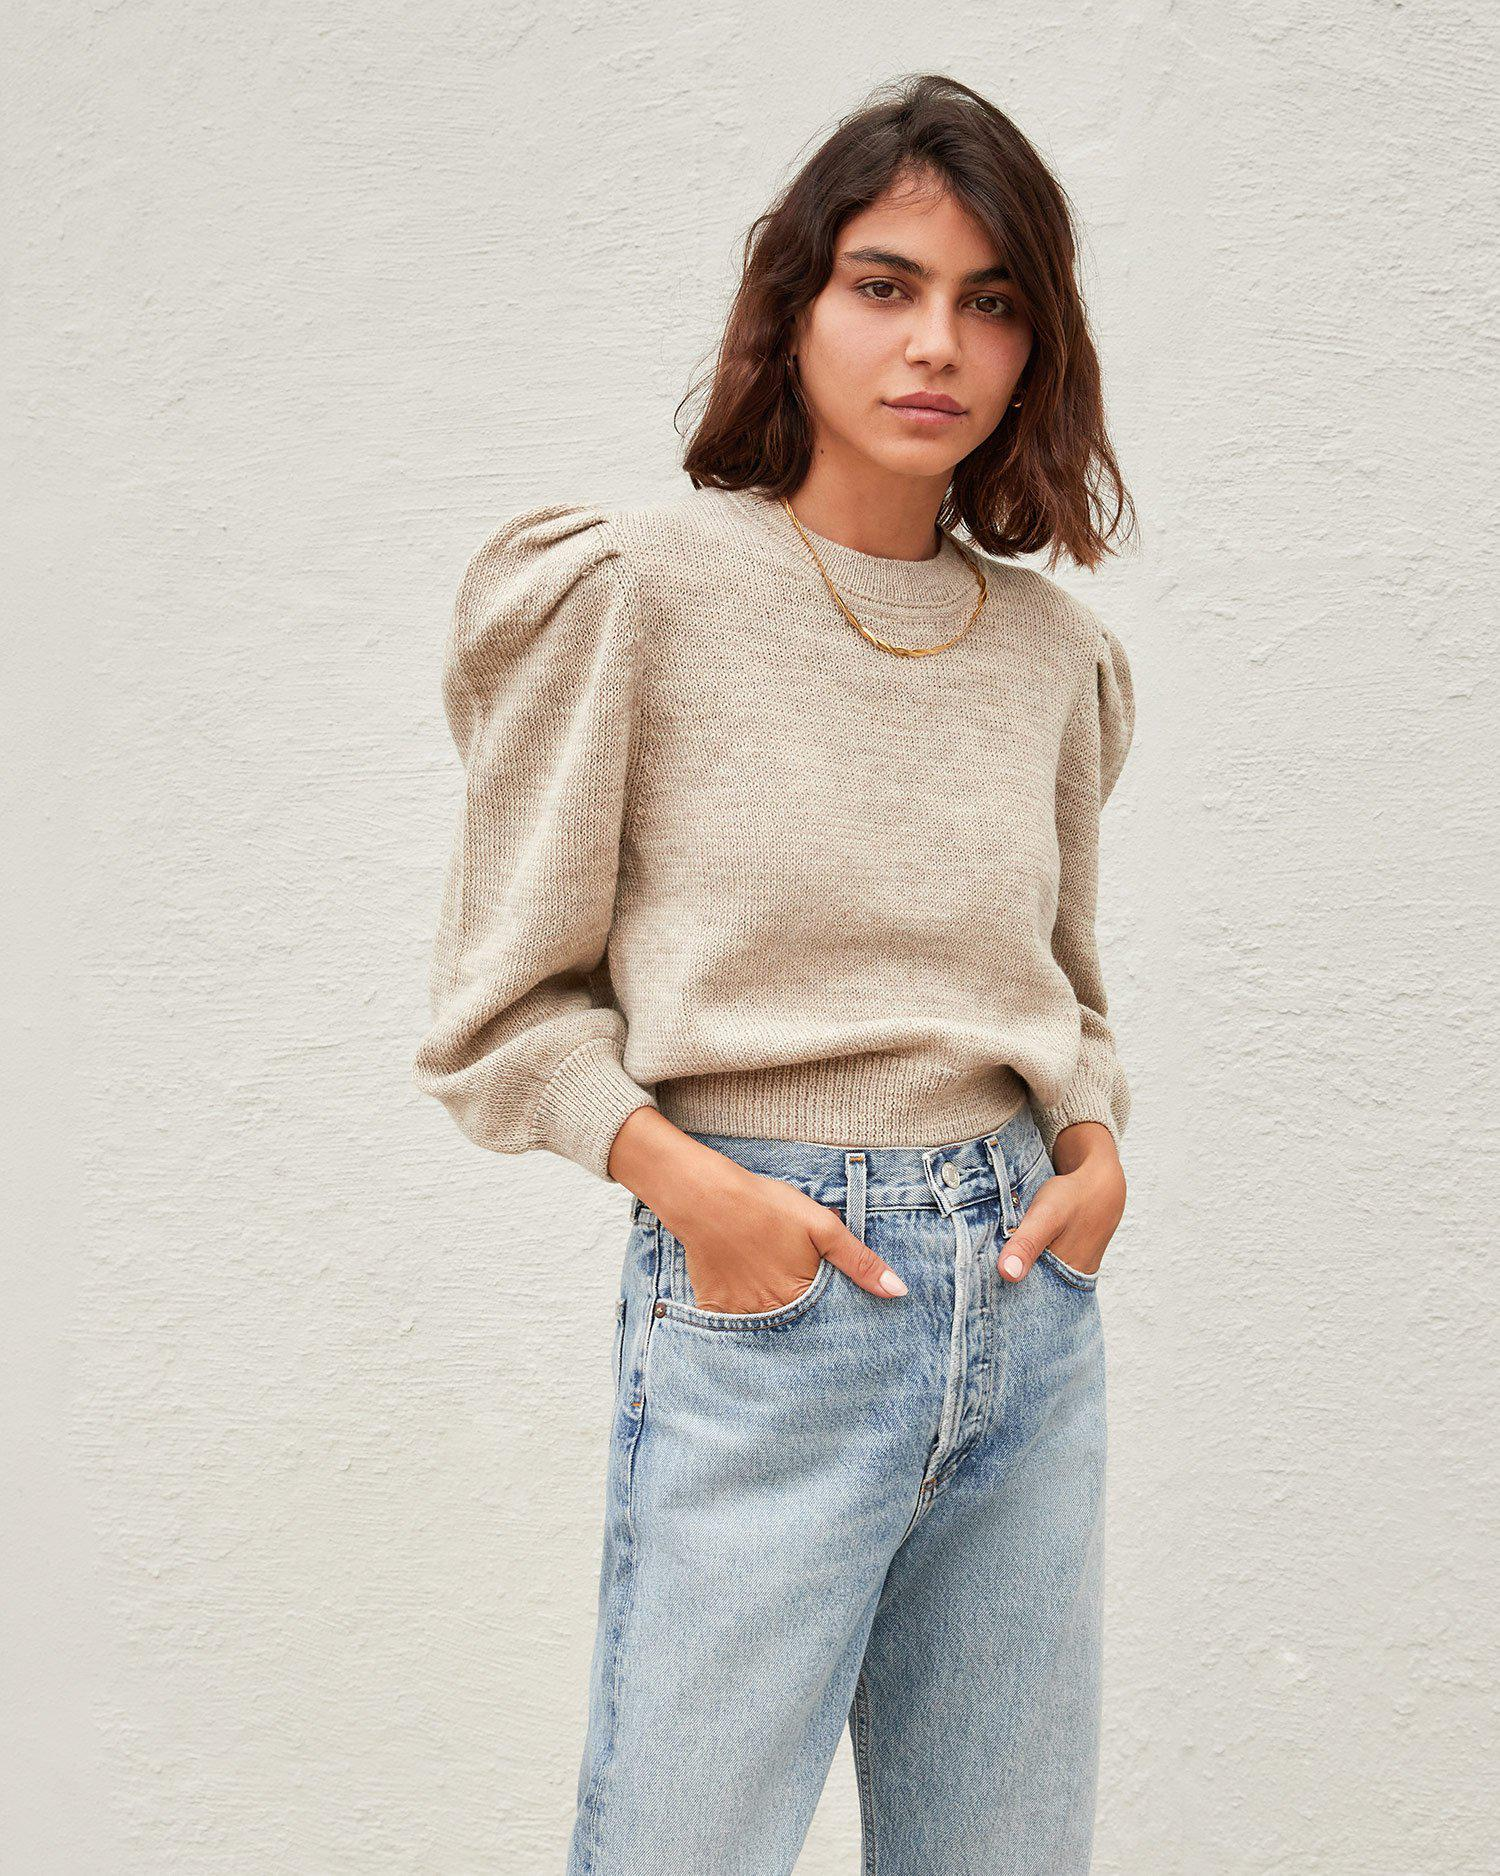 Knits for Good Oatmeal Sweater